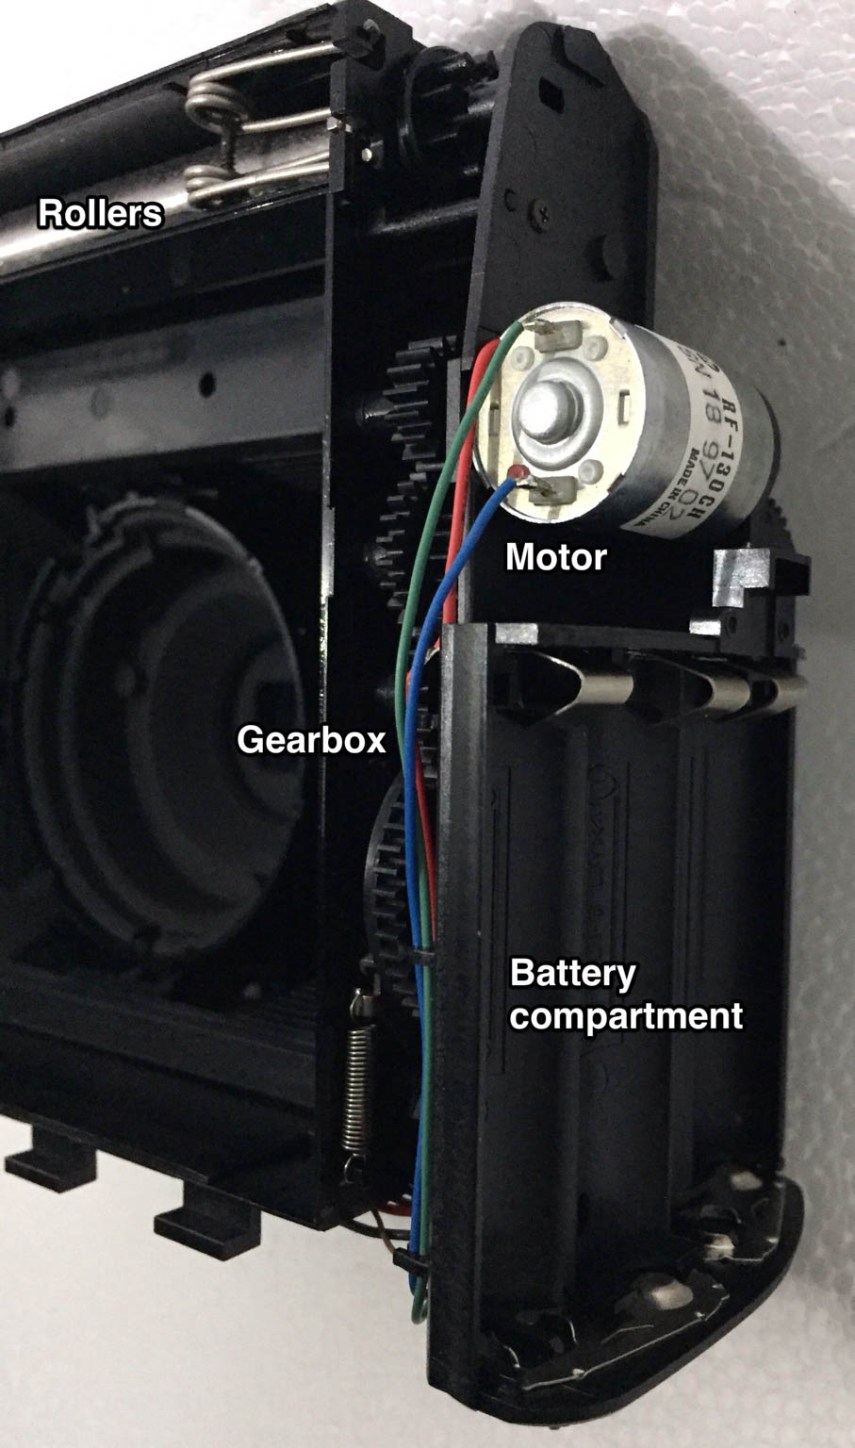 Instax Wide 100 motor gearbox battery compartment